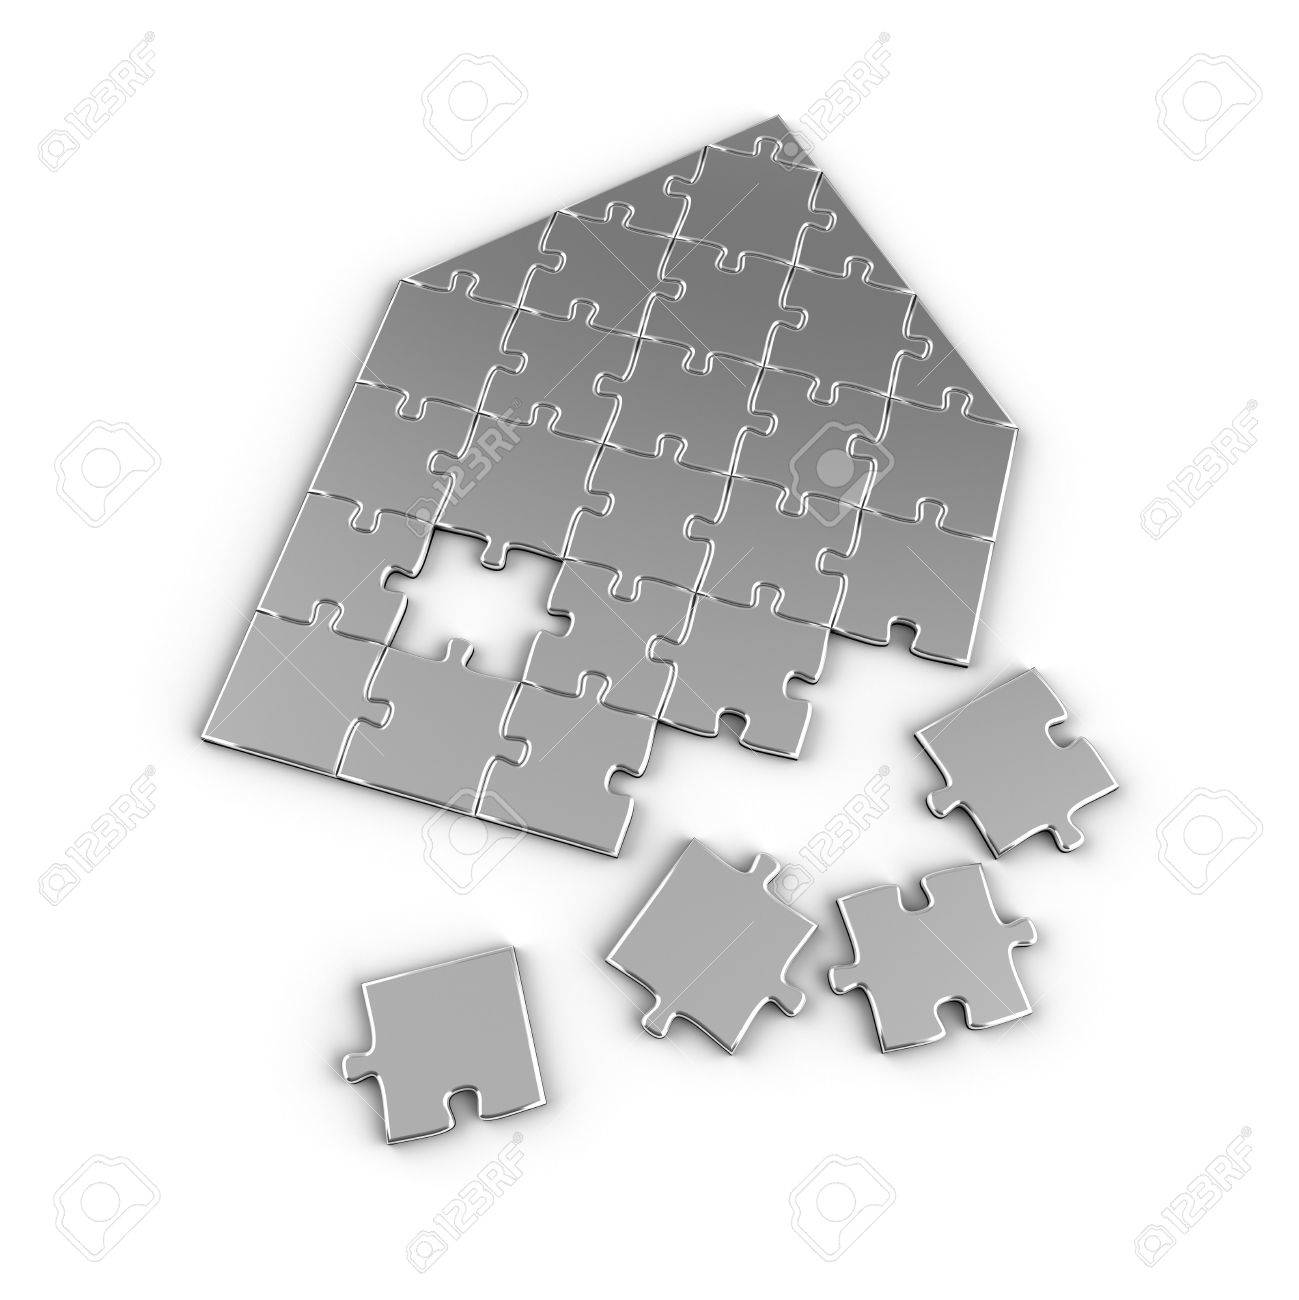 House concept with puzzle pieces over white background Stock Photo - 7306823